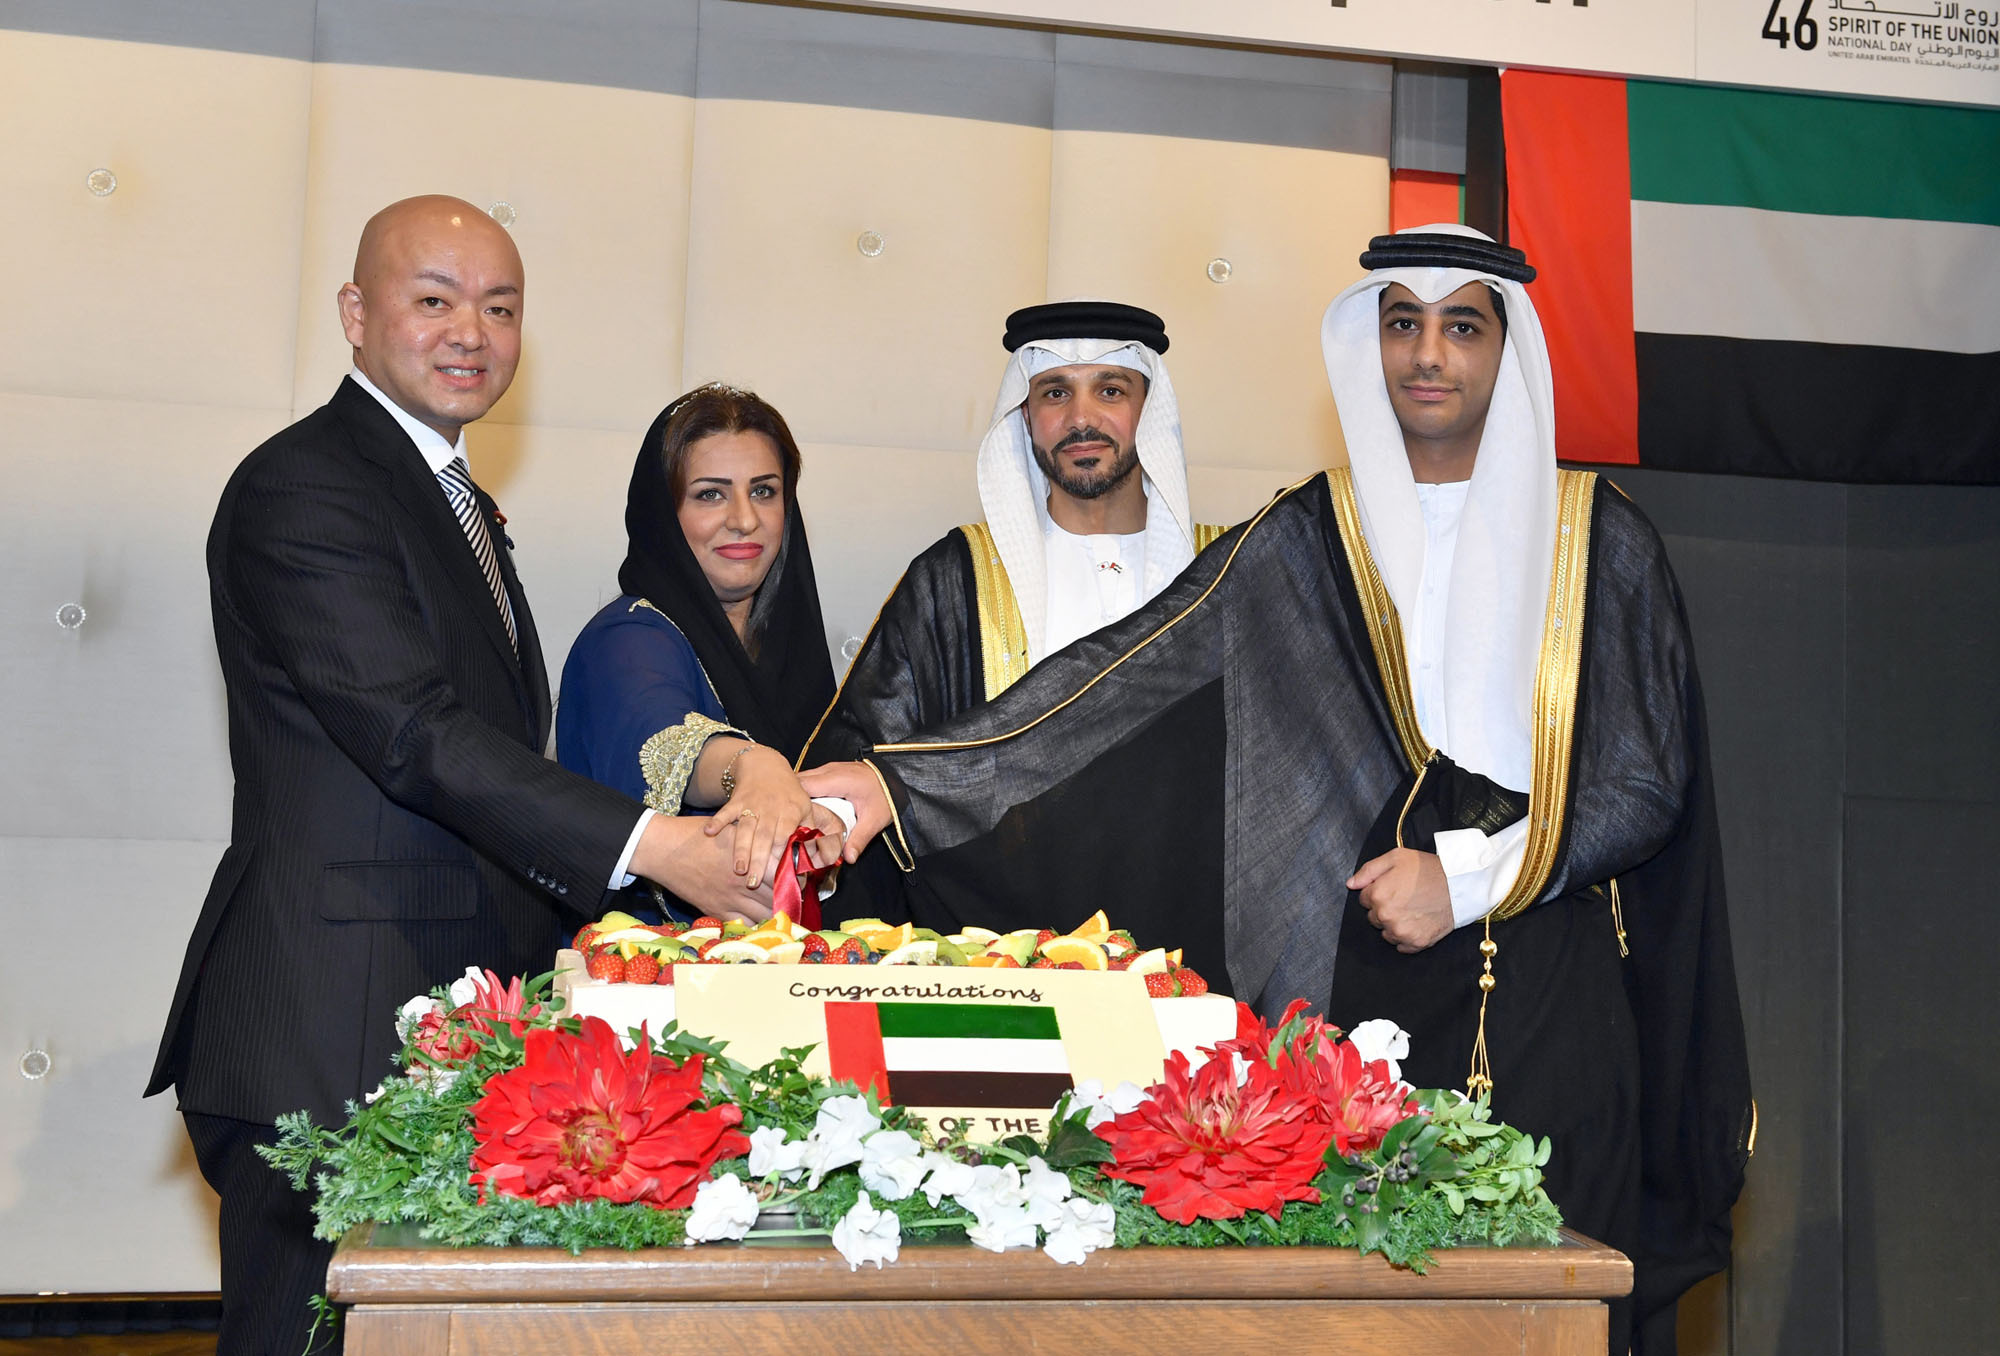 United Arab Emirates Ambassador Khaled Alameri (second from right) cuts a cake during a ceremony to celebrate the country's national day at Palace Hotel Tokyo on Nov. 27. Alameri is photographed with (from left) Manabu Horii, parliamentary vice-minister of foreign affairs, First Secretary Fatima Jumah Mohammed Aldhmani and Second Secretary Suood Ebrahim Leamash. |  YOSHIAKI MIURA